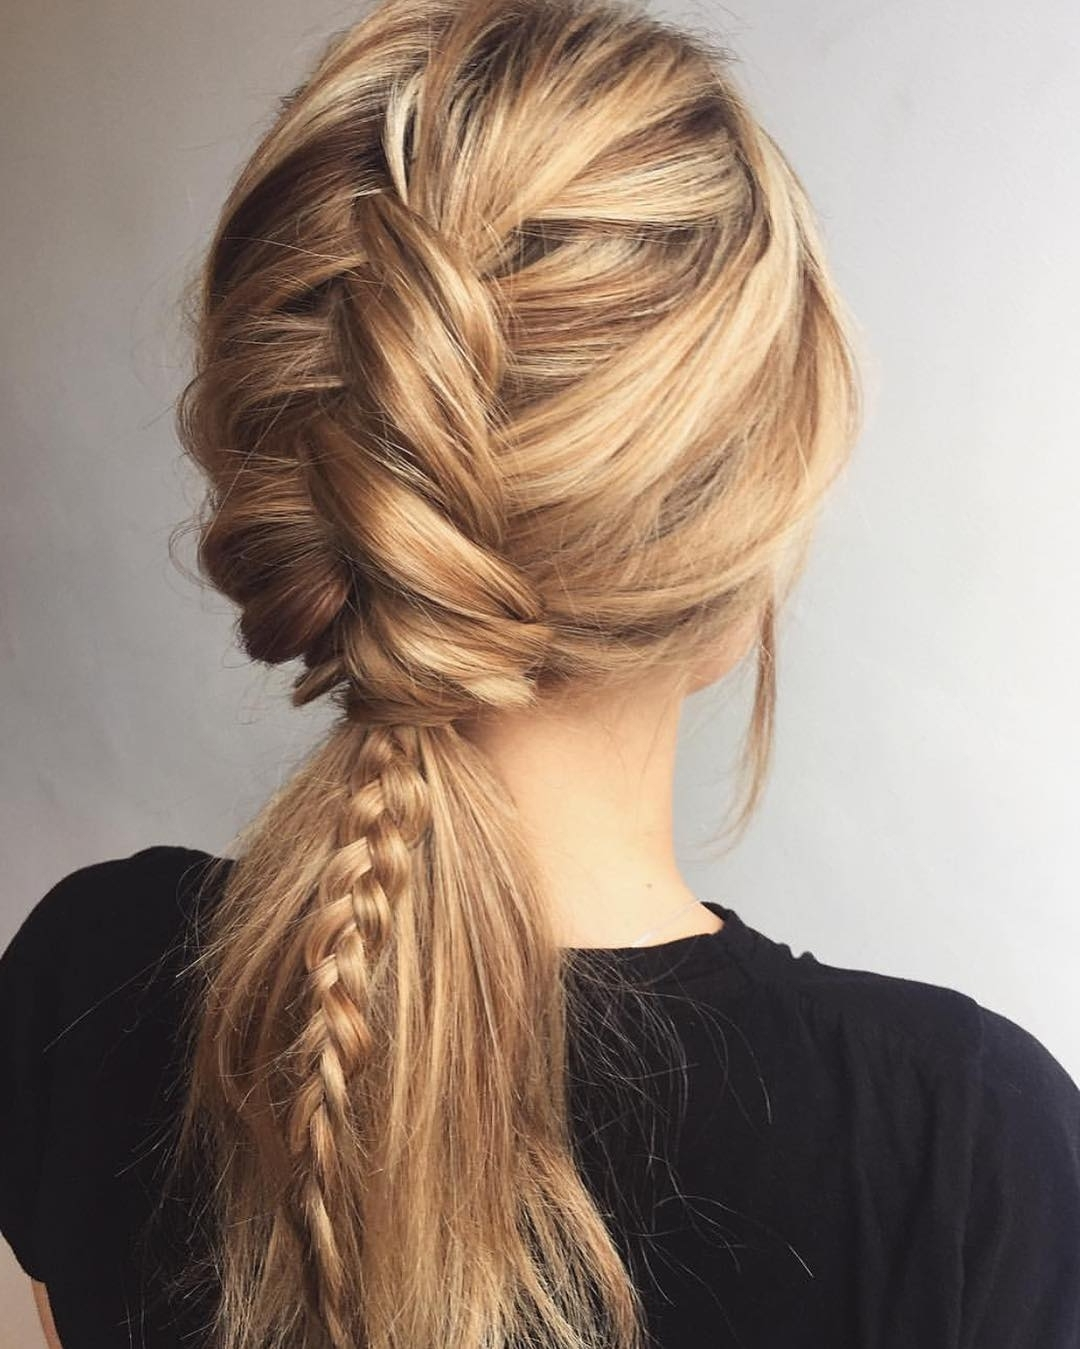 Best And Newest Intricate Updo Ponytail Hairstyles For Highlighted Hair Regarding 10 Ultra Ponytail Braided Hairstyles For Long Hair; Parties! (View 16 of 20)